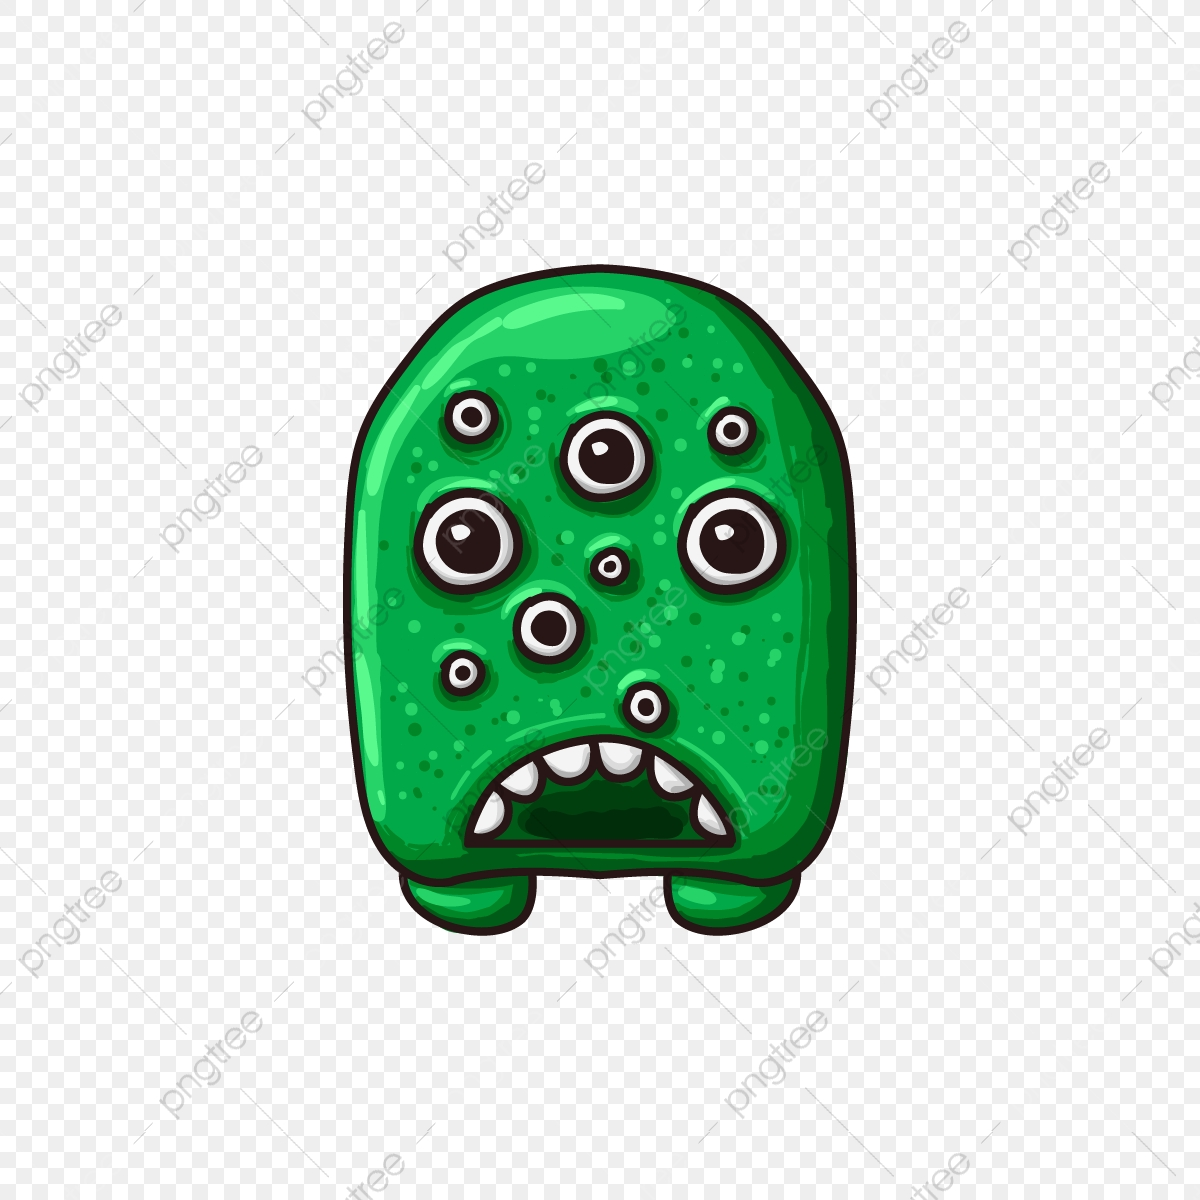 Monster Game Assets Ui Kit, Game, Ui, Kit PNG and Vector